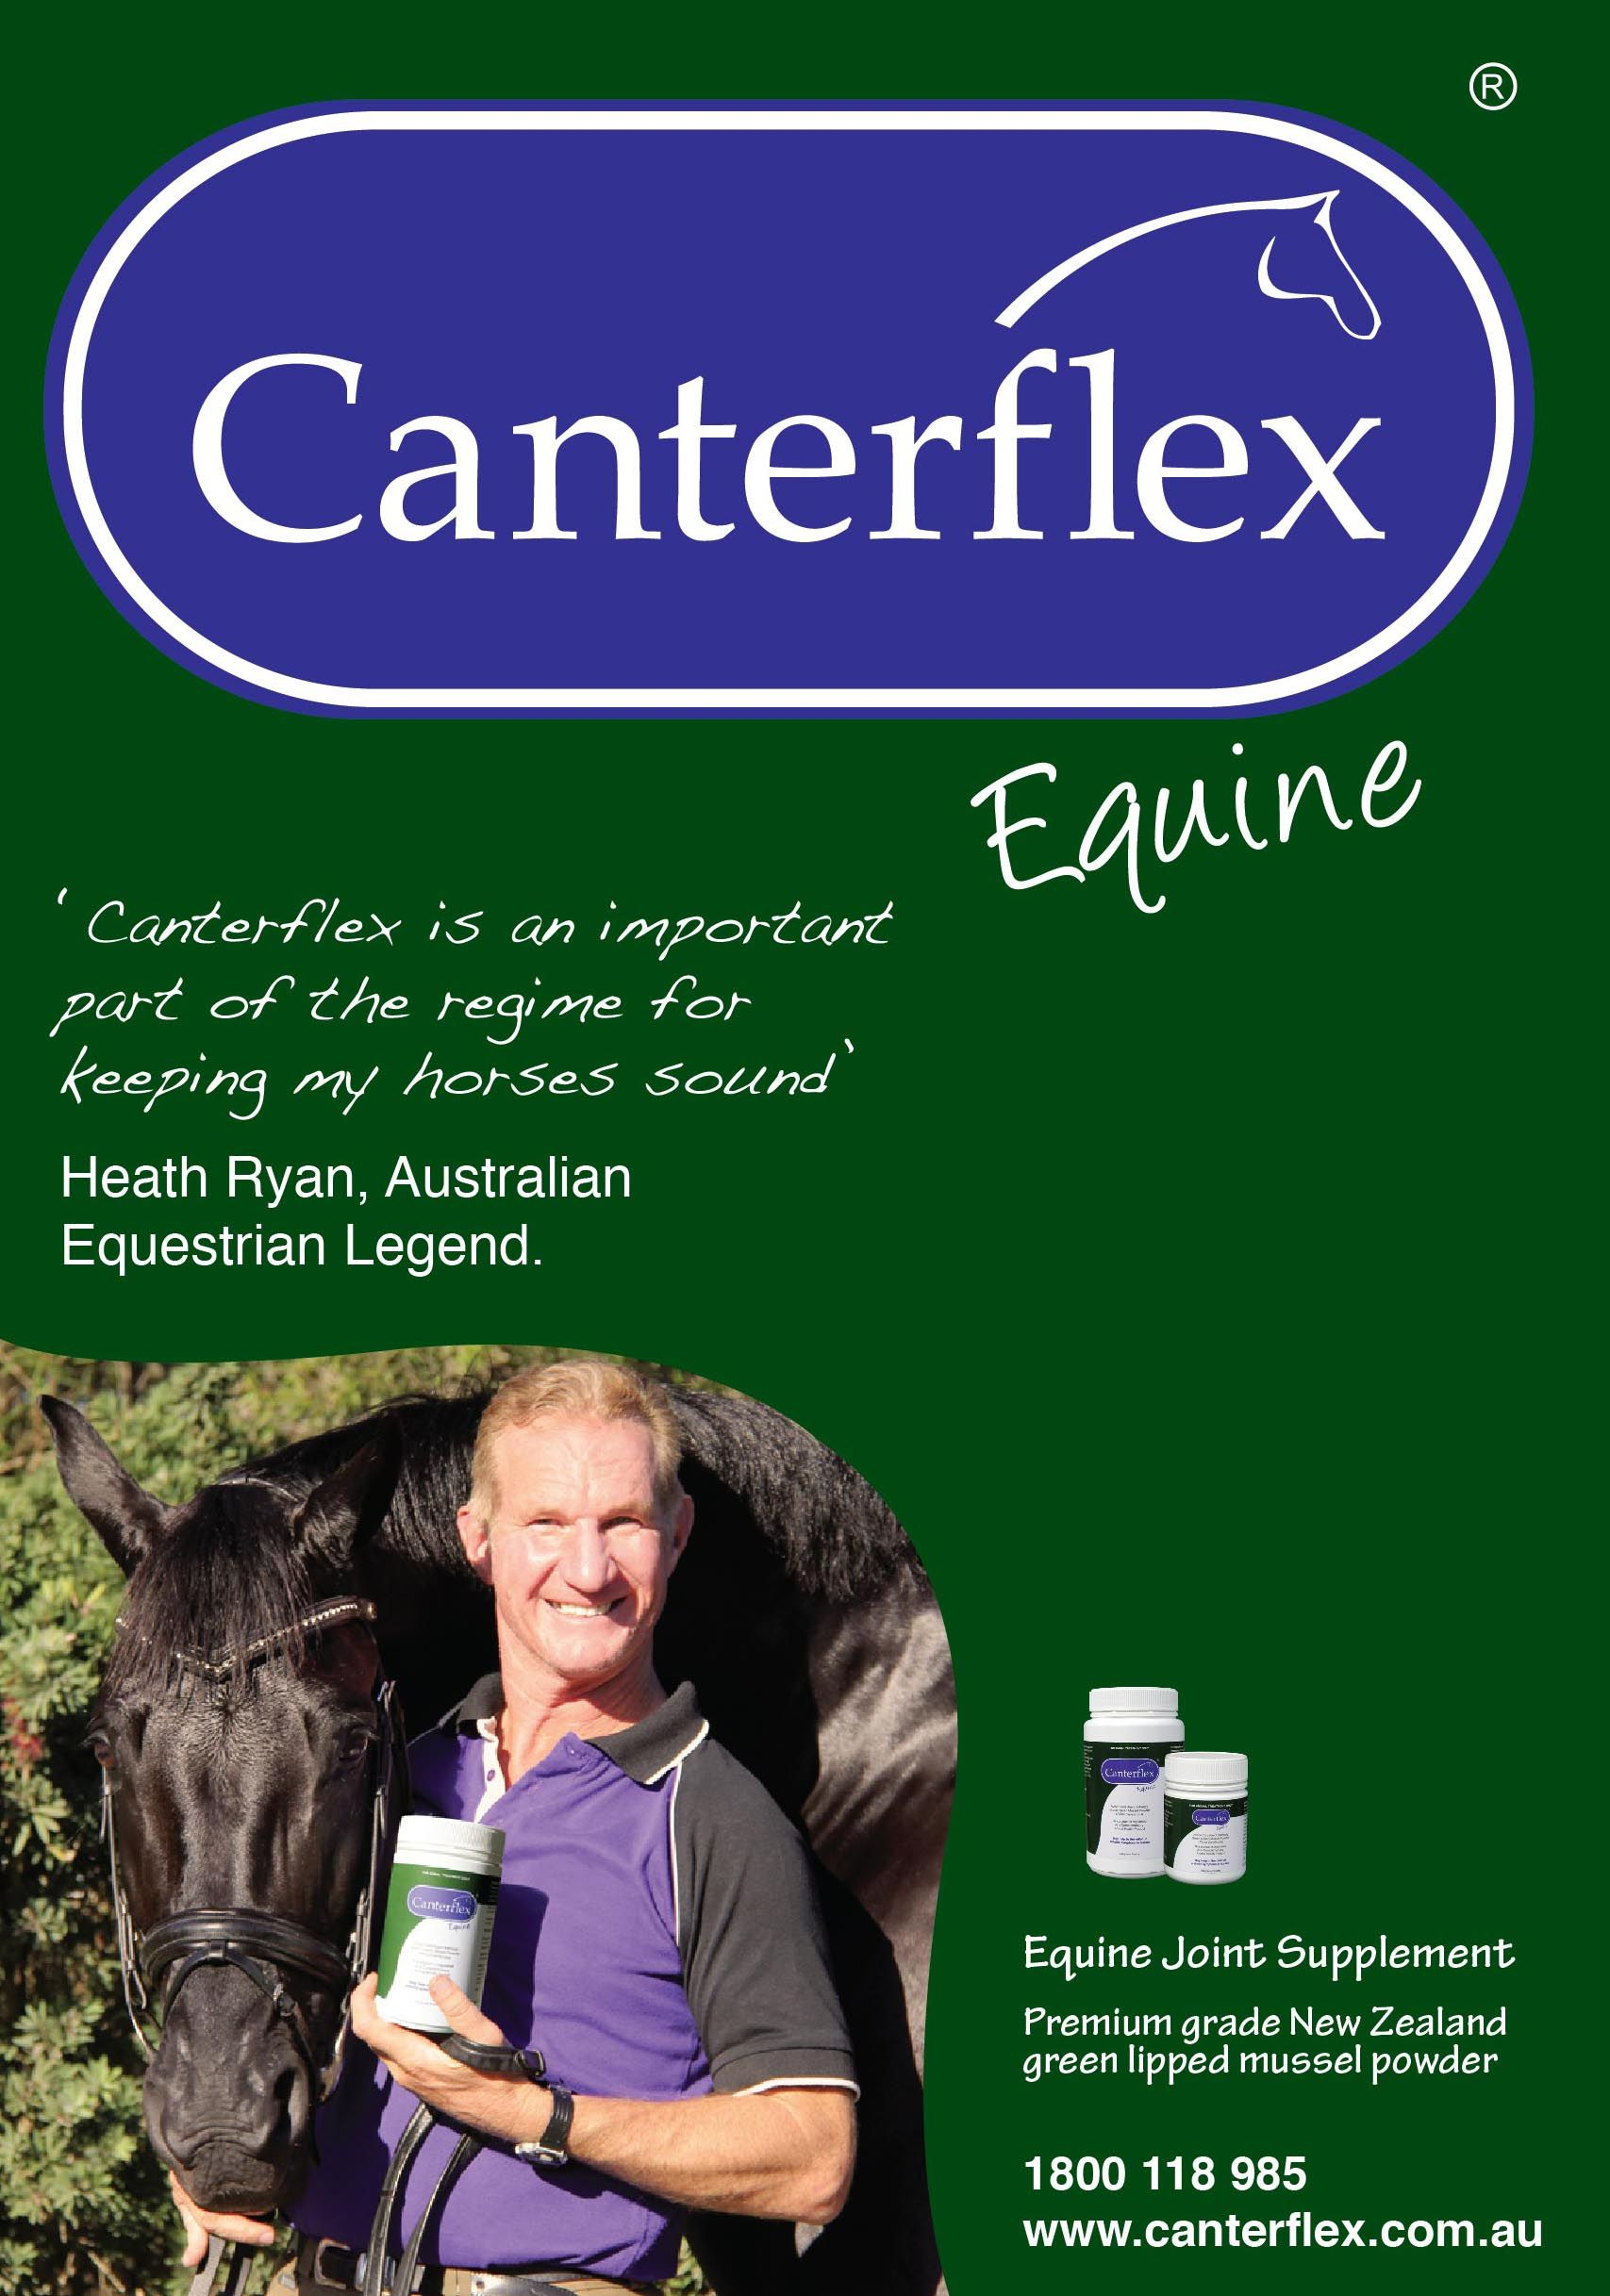 'Canterflex is an important part of the regime for keeping my horses sound' Heath Ryan, Australian Equestrian Legend.